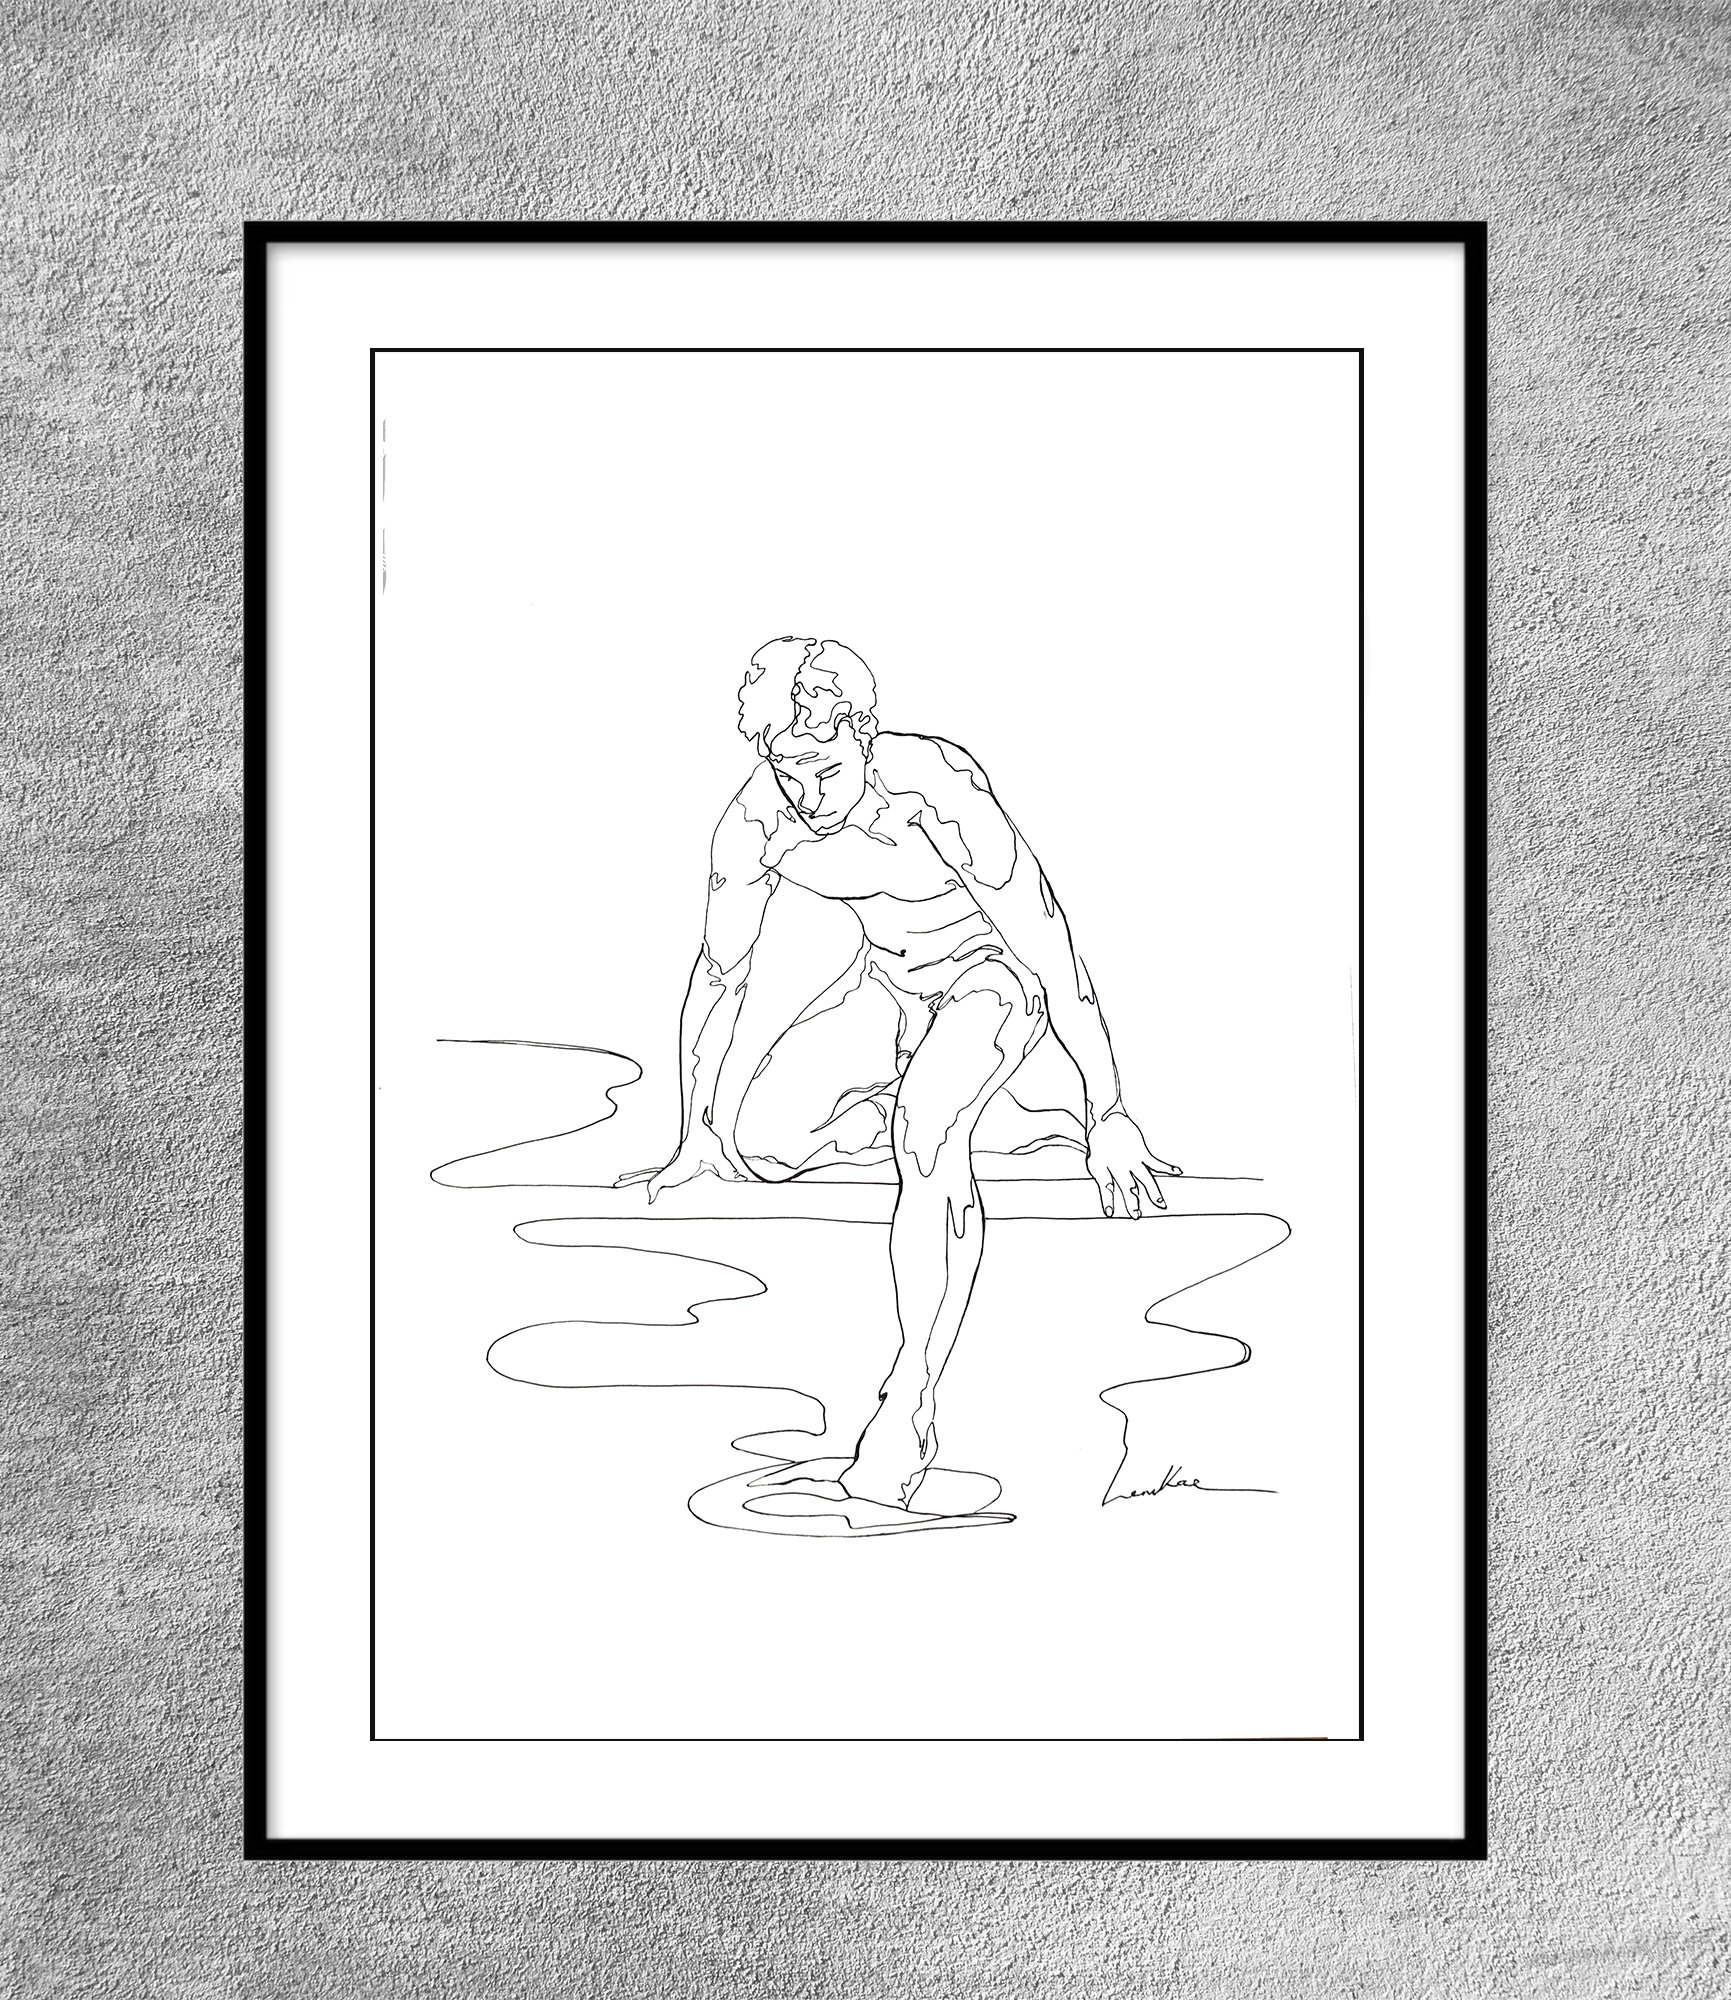 Leni Kae Sydney Artist Illustrator Framed Eg A Toe In The Water Line Art Drawing